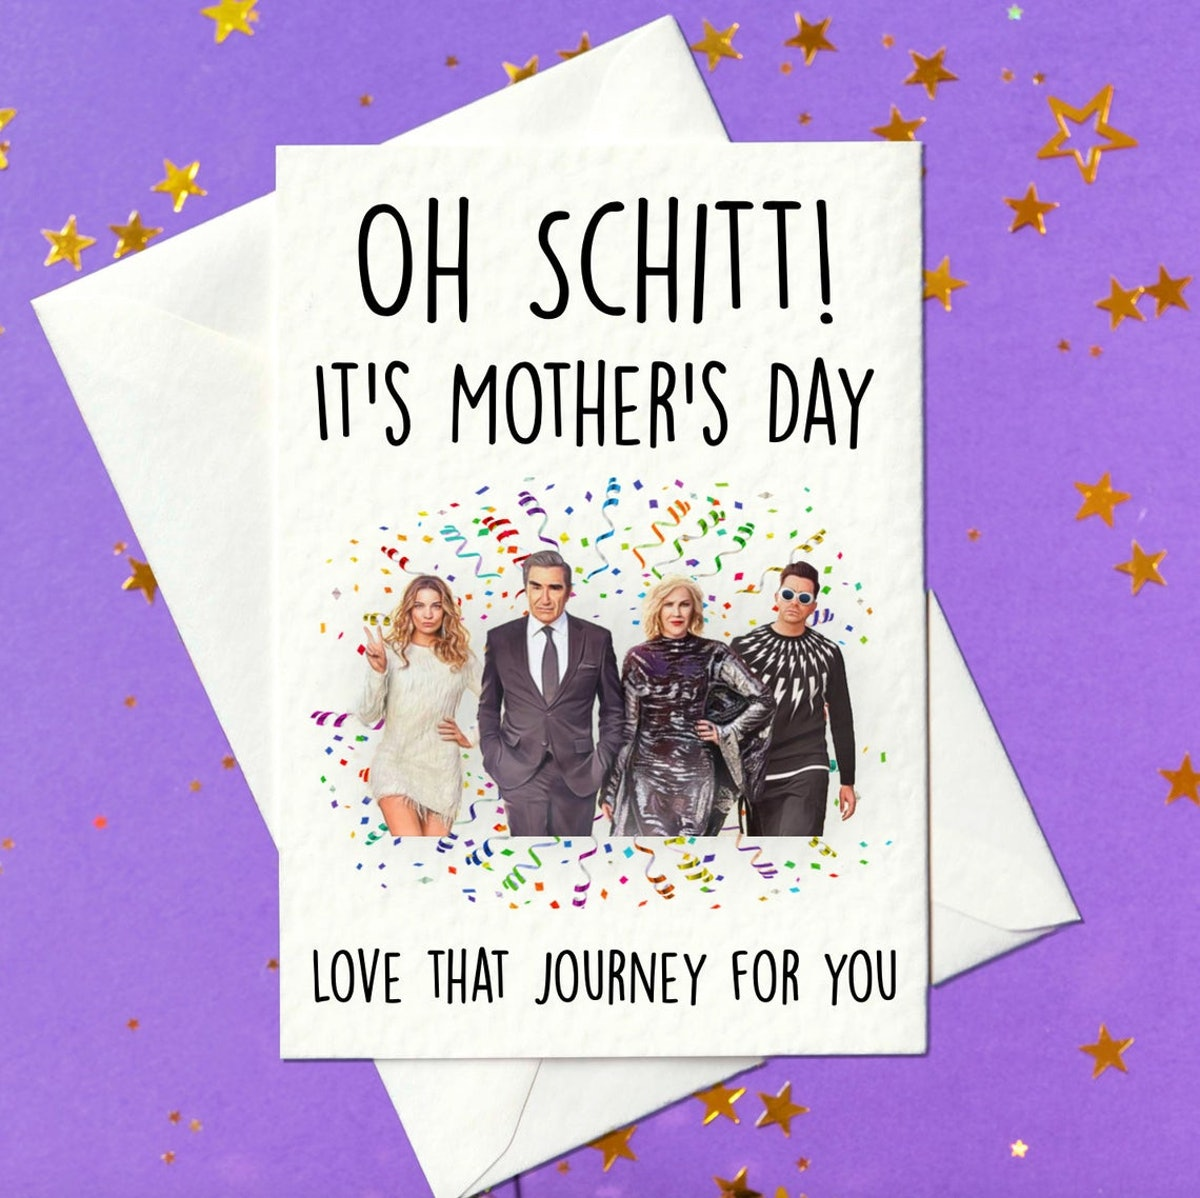 Oh Schitt It's Mother's Day - love that journey for you - Mothers Day Card